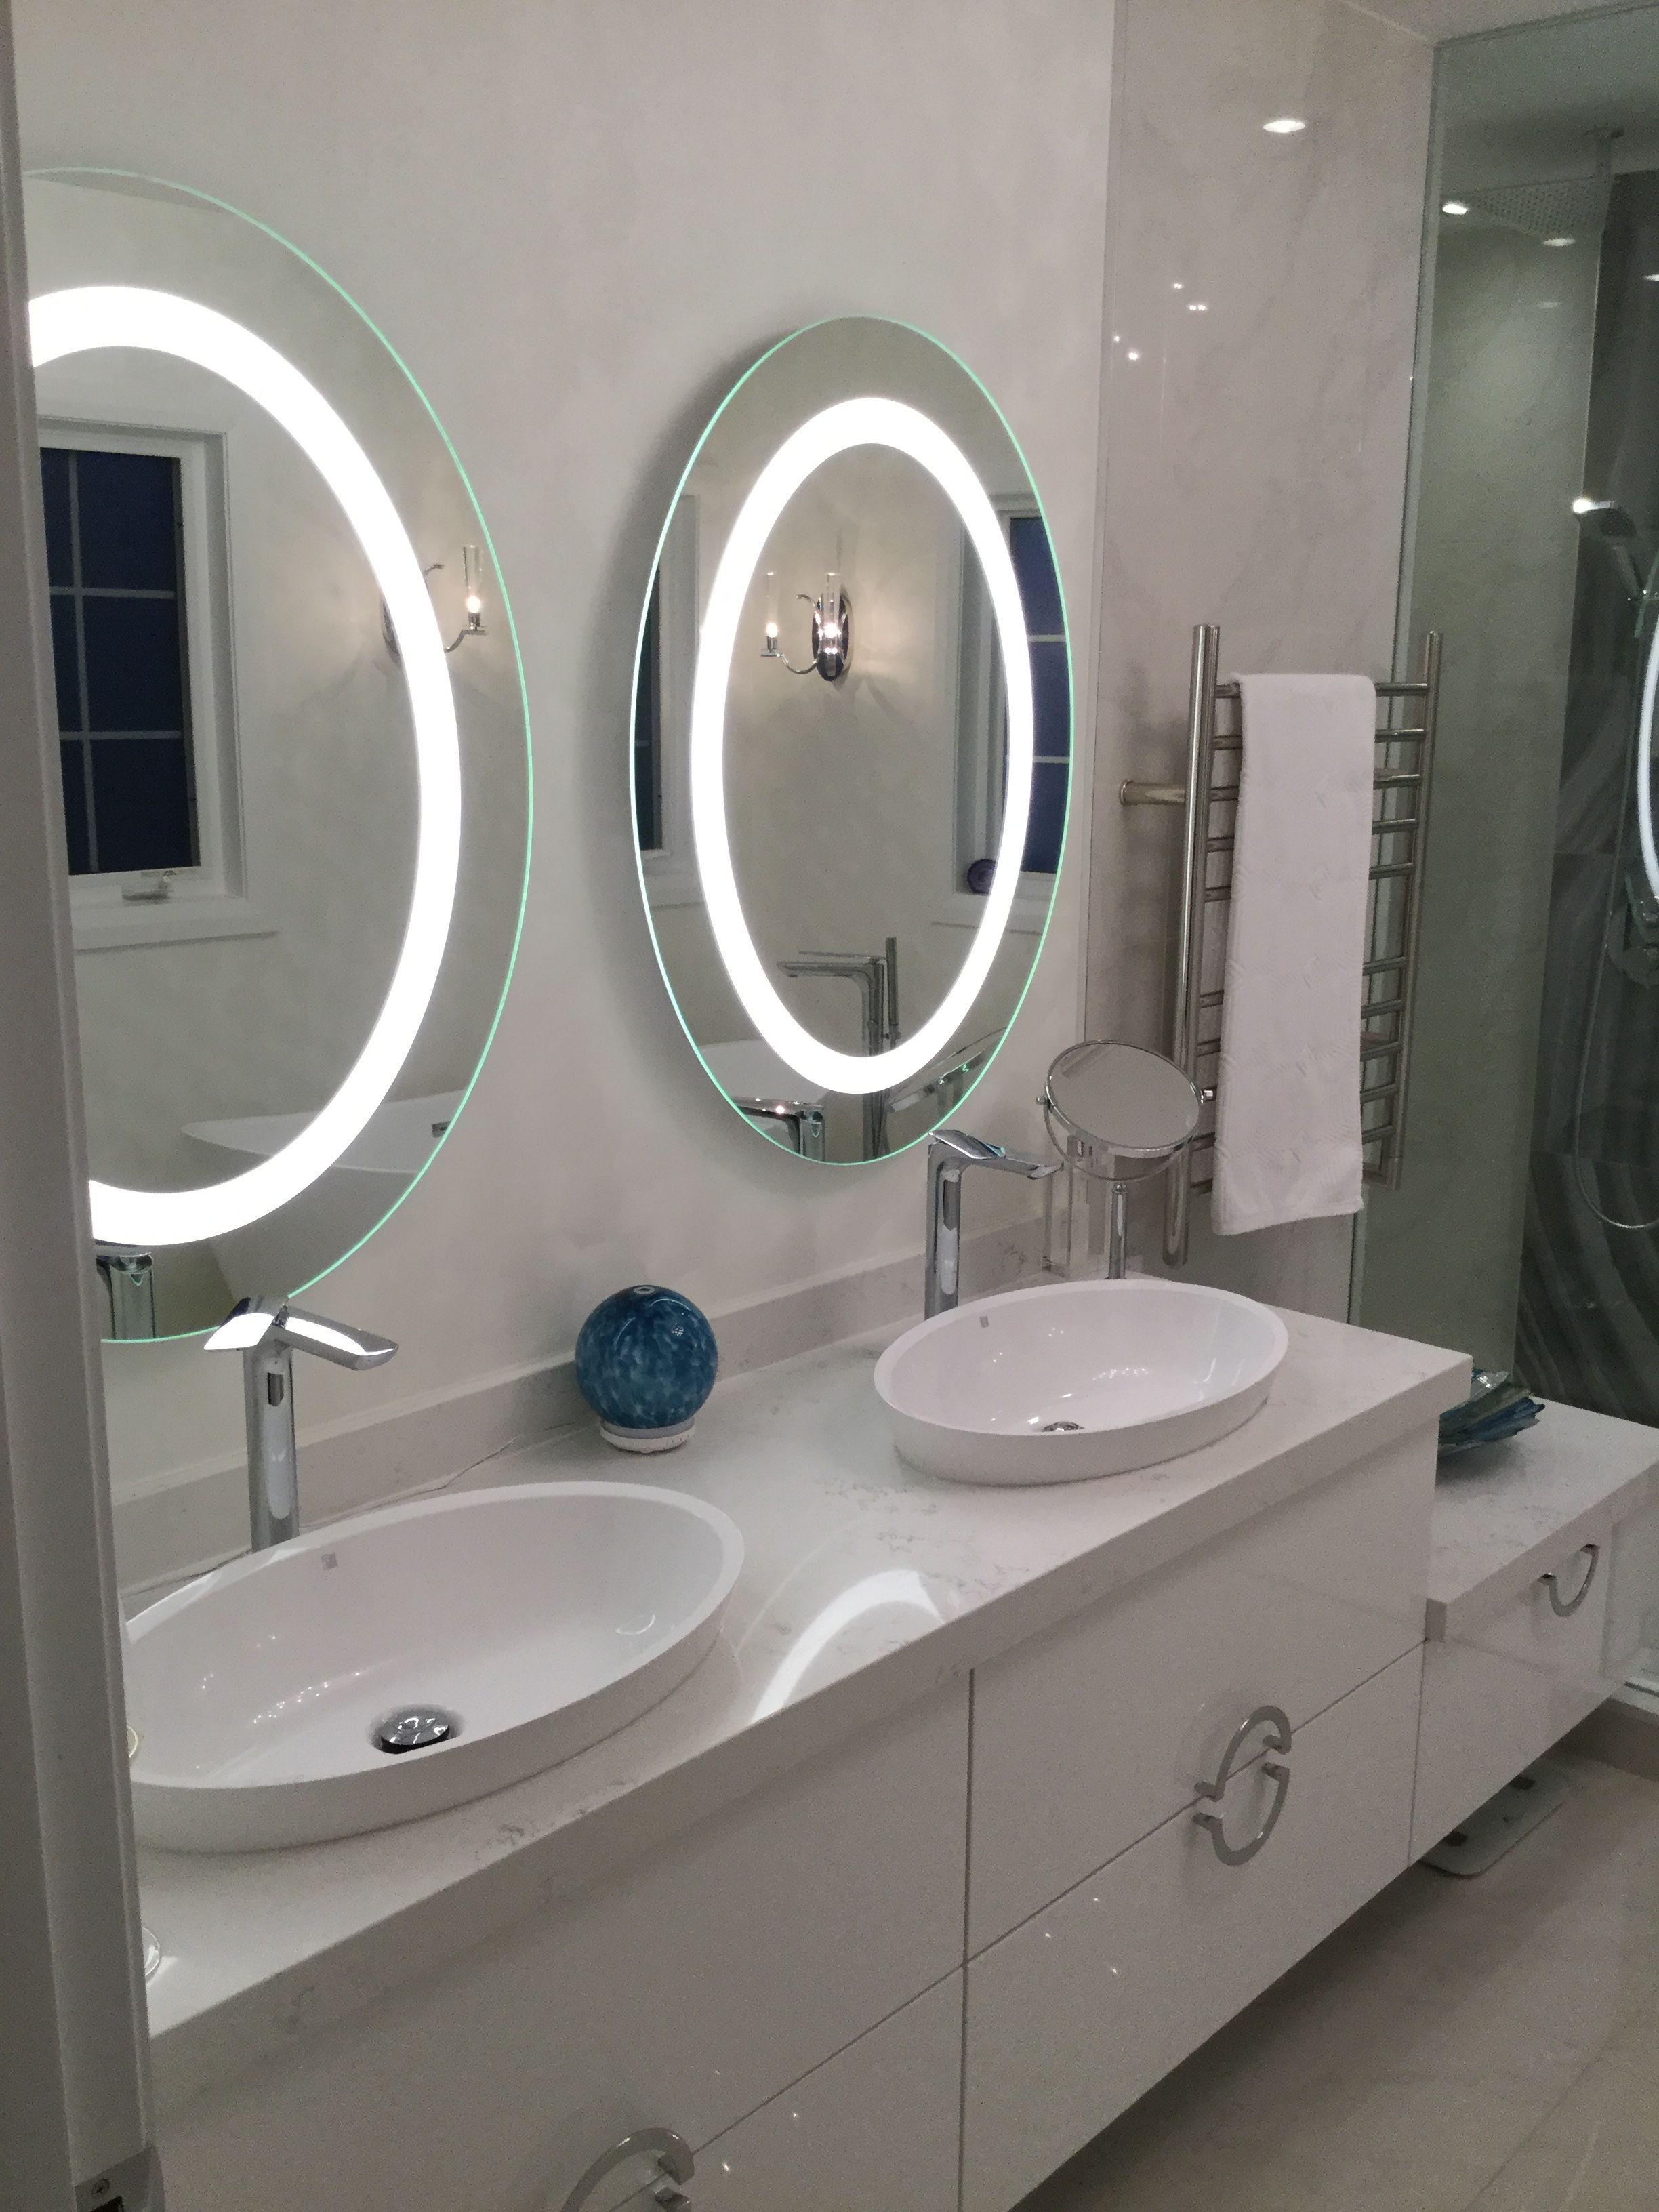 Oval Led Mirrors Bathroom Mirror Mirror Wall Bathroom Bathroom Vanities For Sale